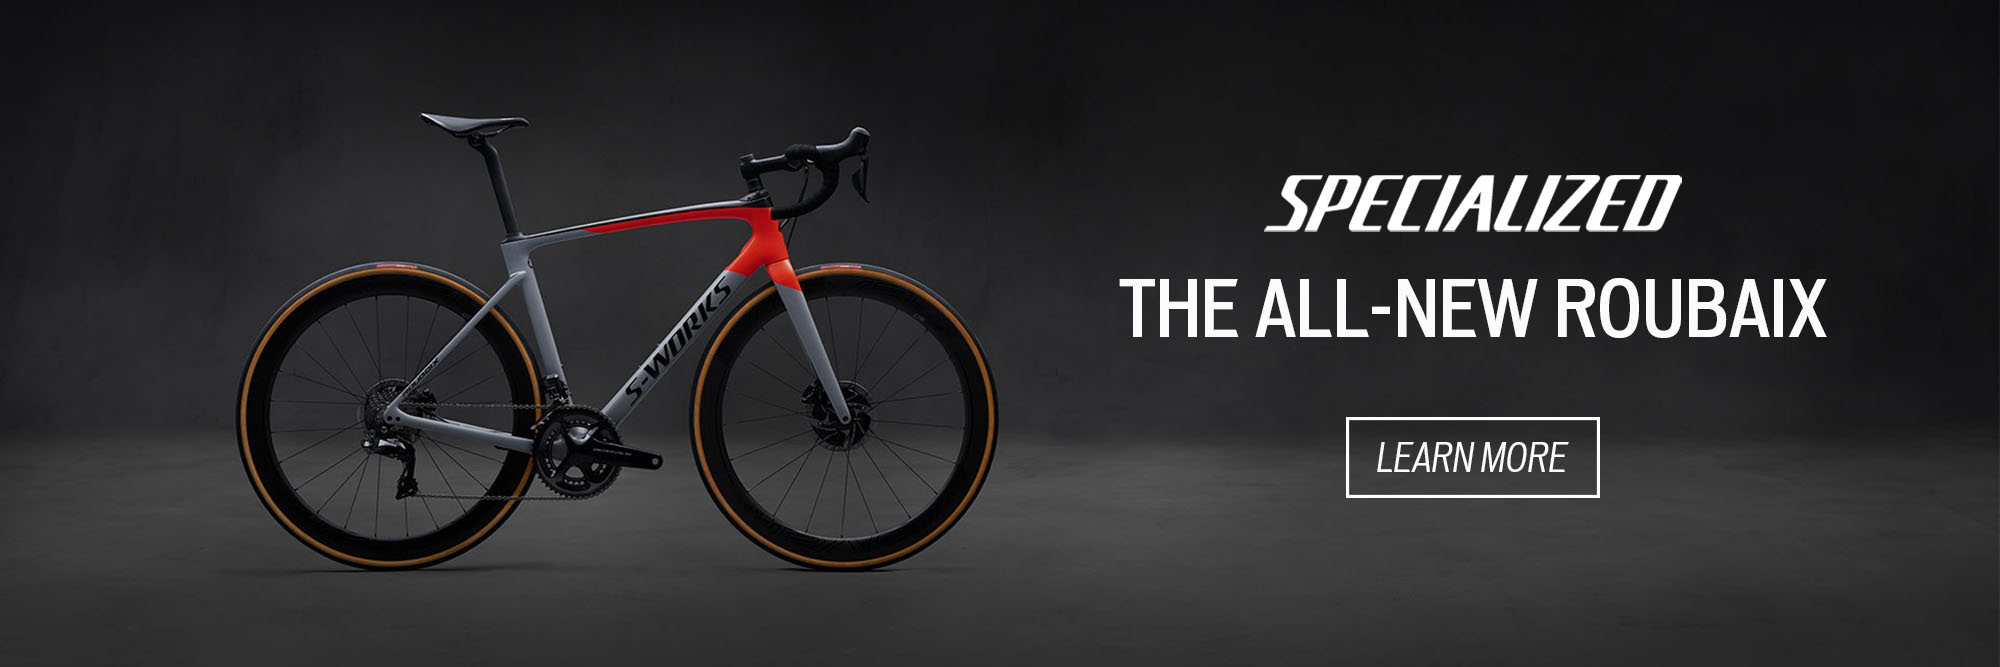 ALL-NEW SPECIALIZED ROUBAIX